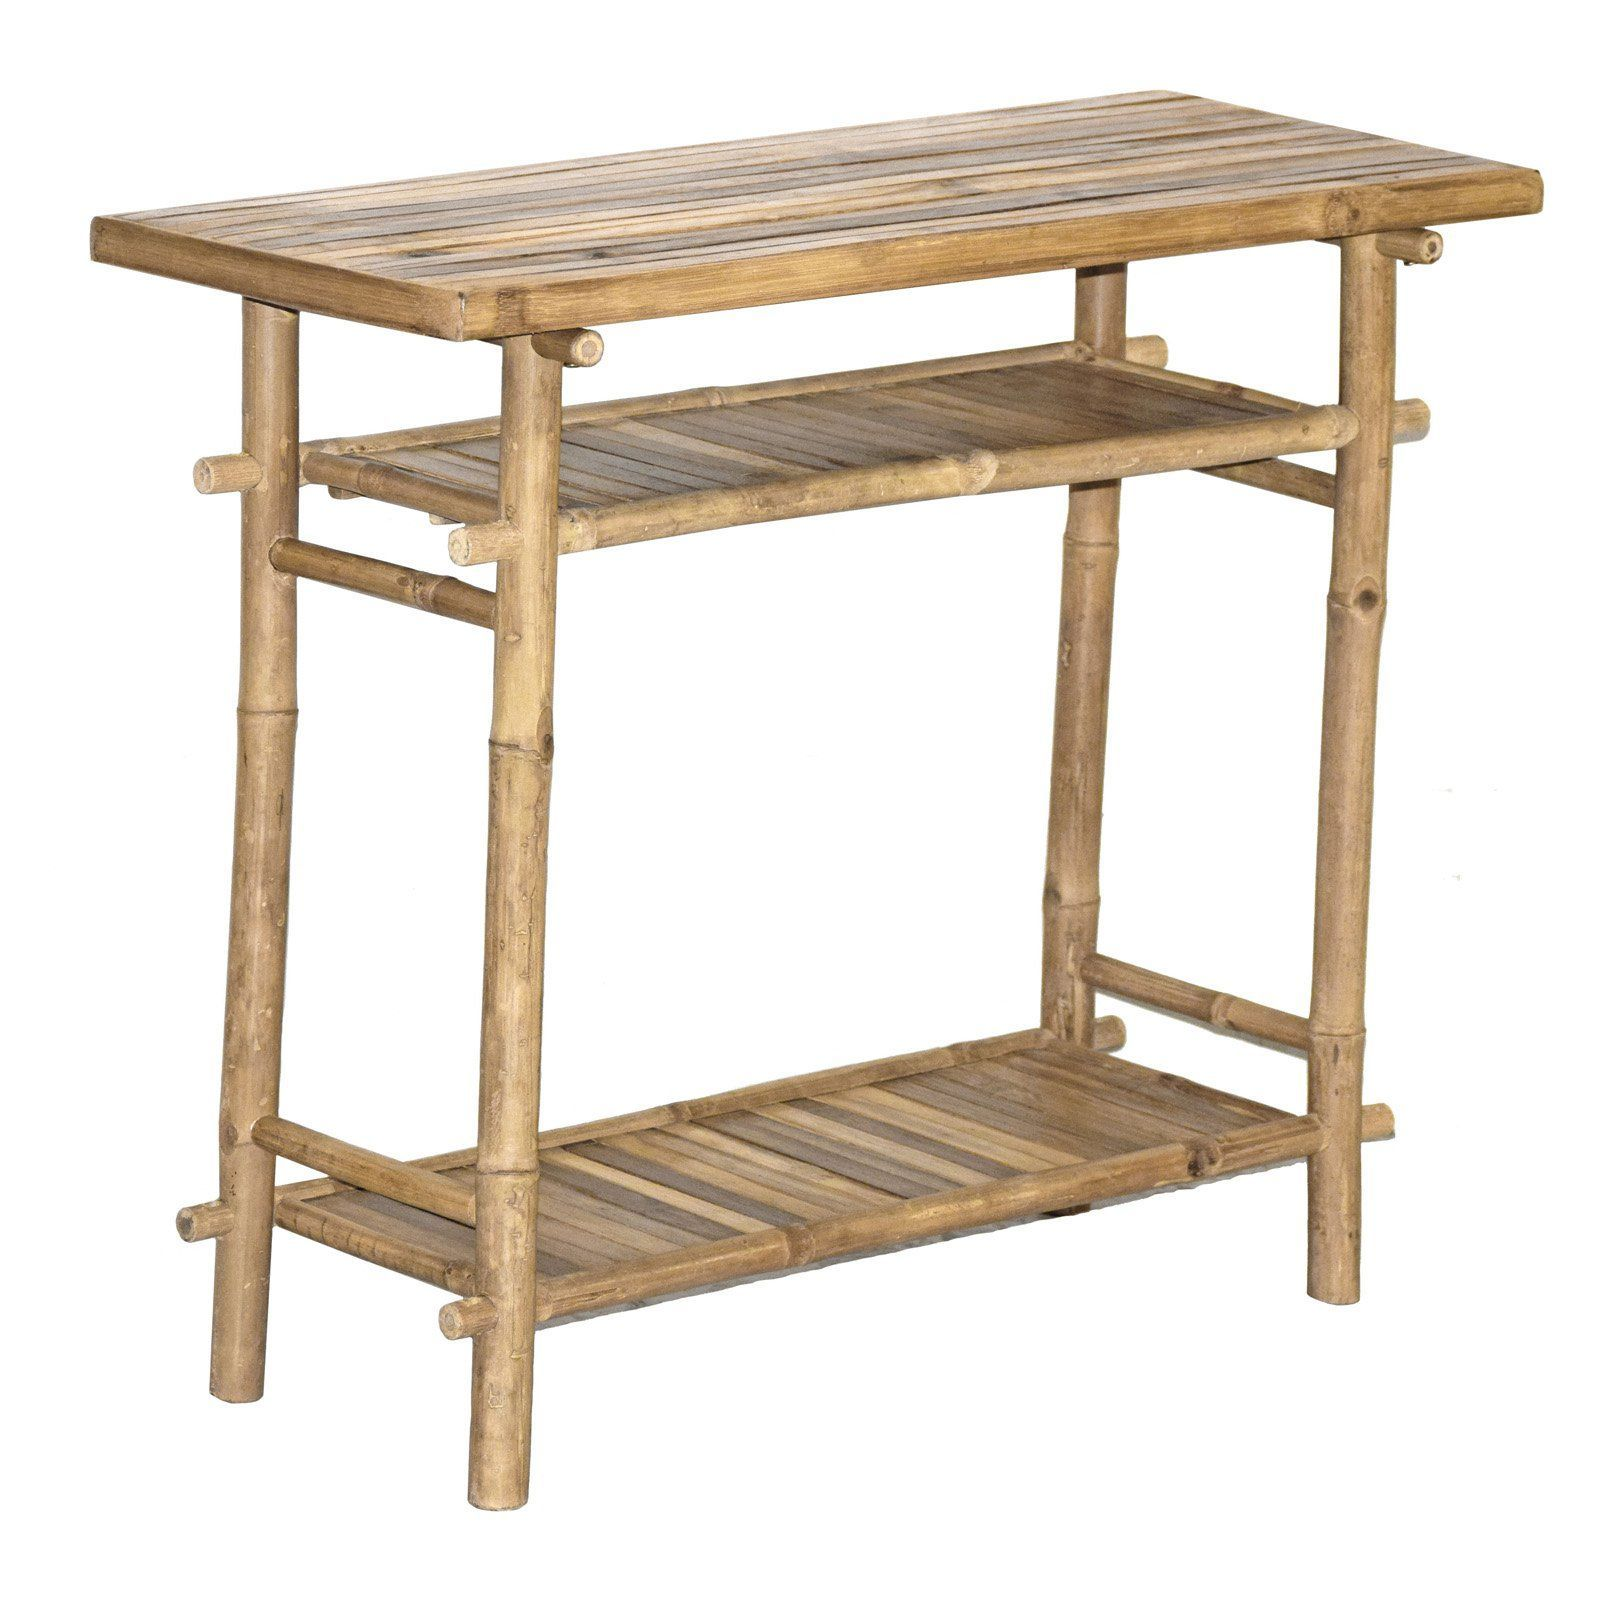 Bamboo54 Bamboo Kd Hallway Table 5866 Products In 2019